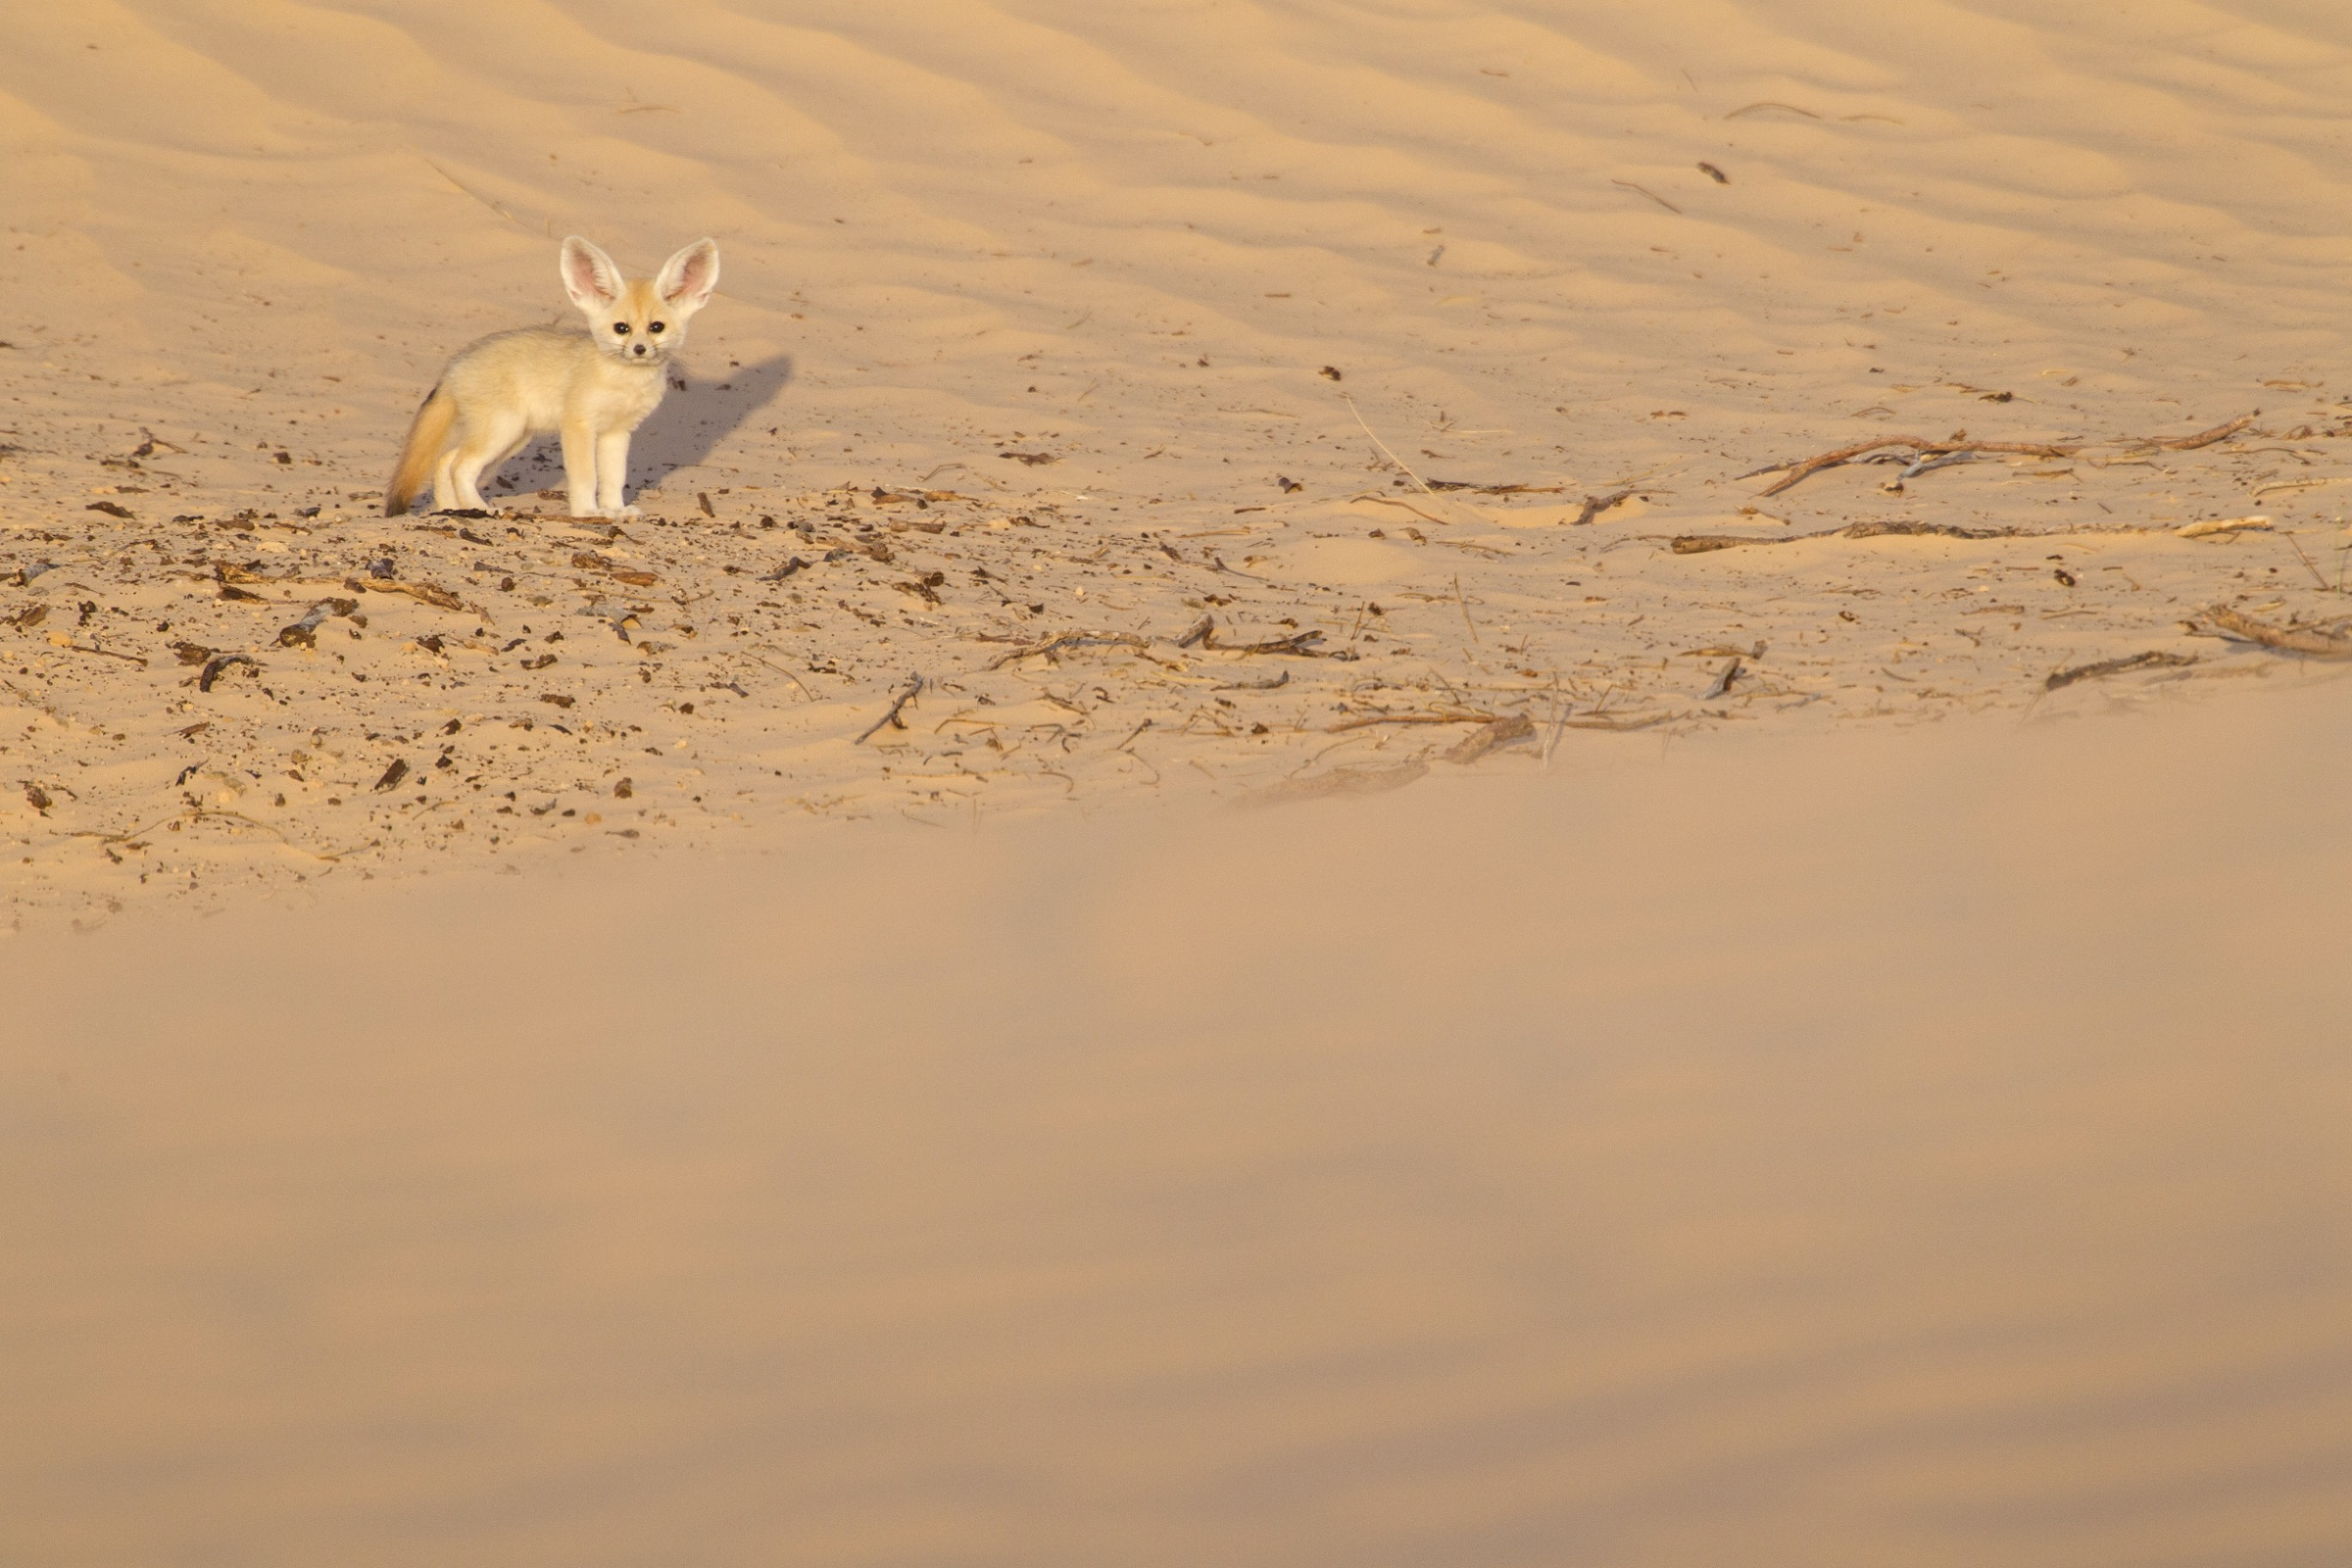 One of the first two fennec fox pups that D'Amicis encountered in the wild explores the terrain around its den.